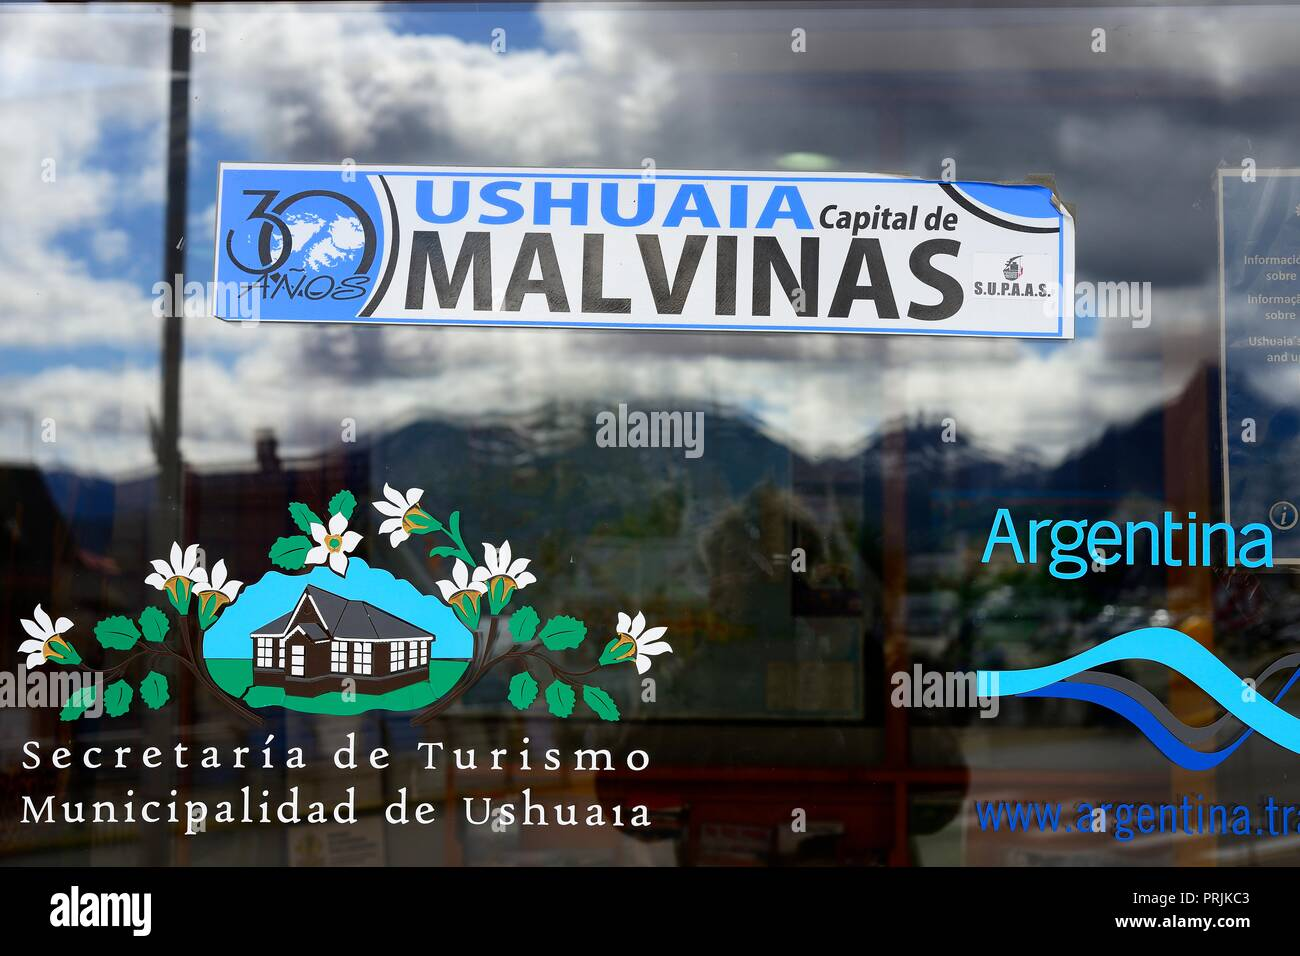 Ushuaia, capital of the Malvinas, Falkland Islands, sticker at the Tourist Information Office, Tierra del Fuego Province - Stock Image